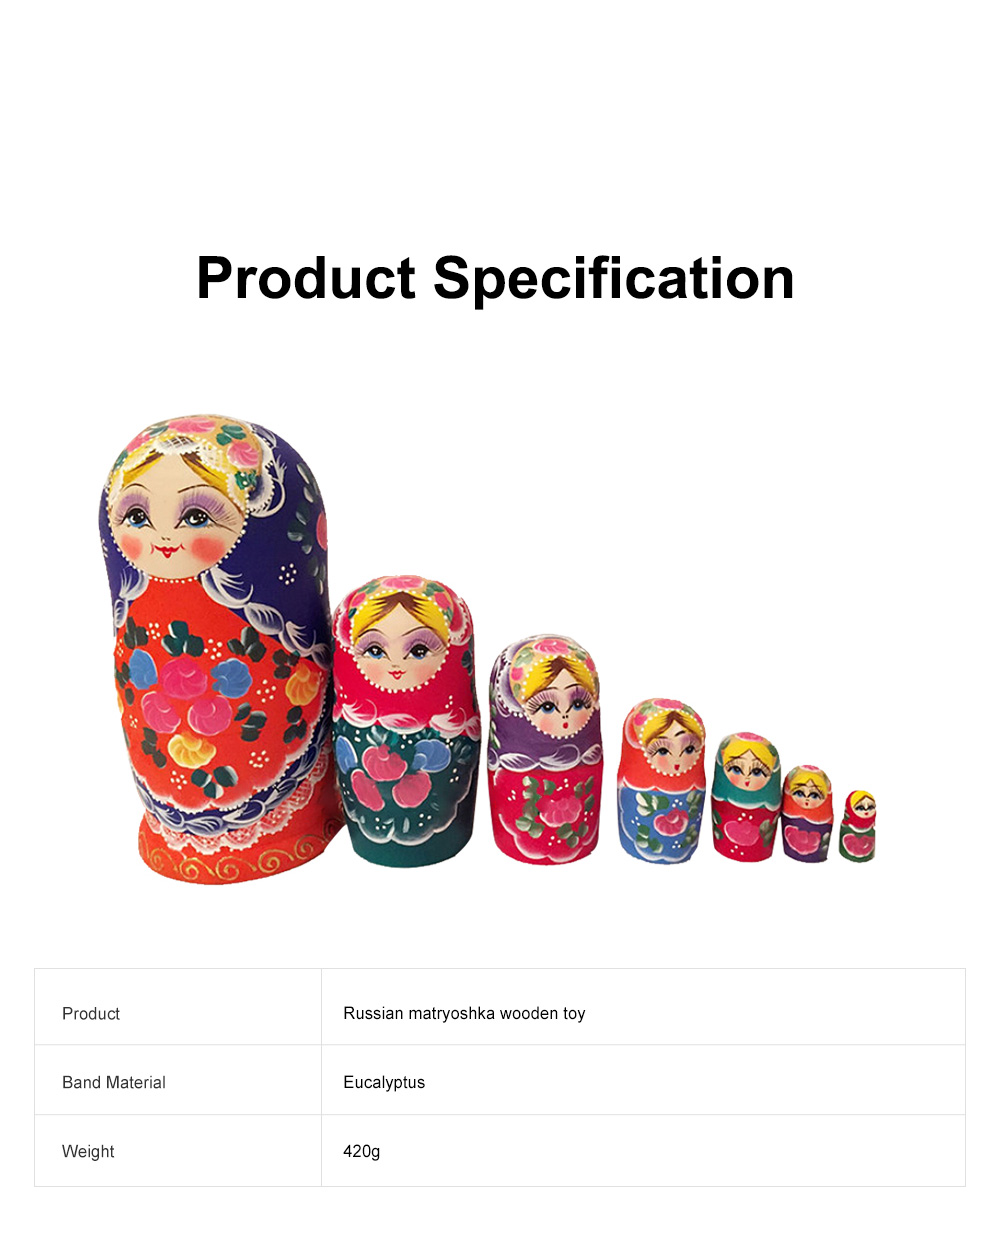 Matryoshka Dolls Nesting Stacking Wooden Russian Toys with Flower Ornament Hand Painted Wood Souvenir Folk Art Crafts 6